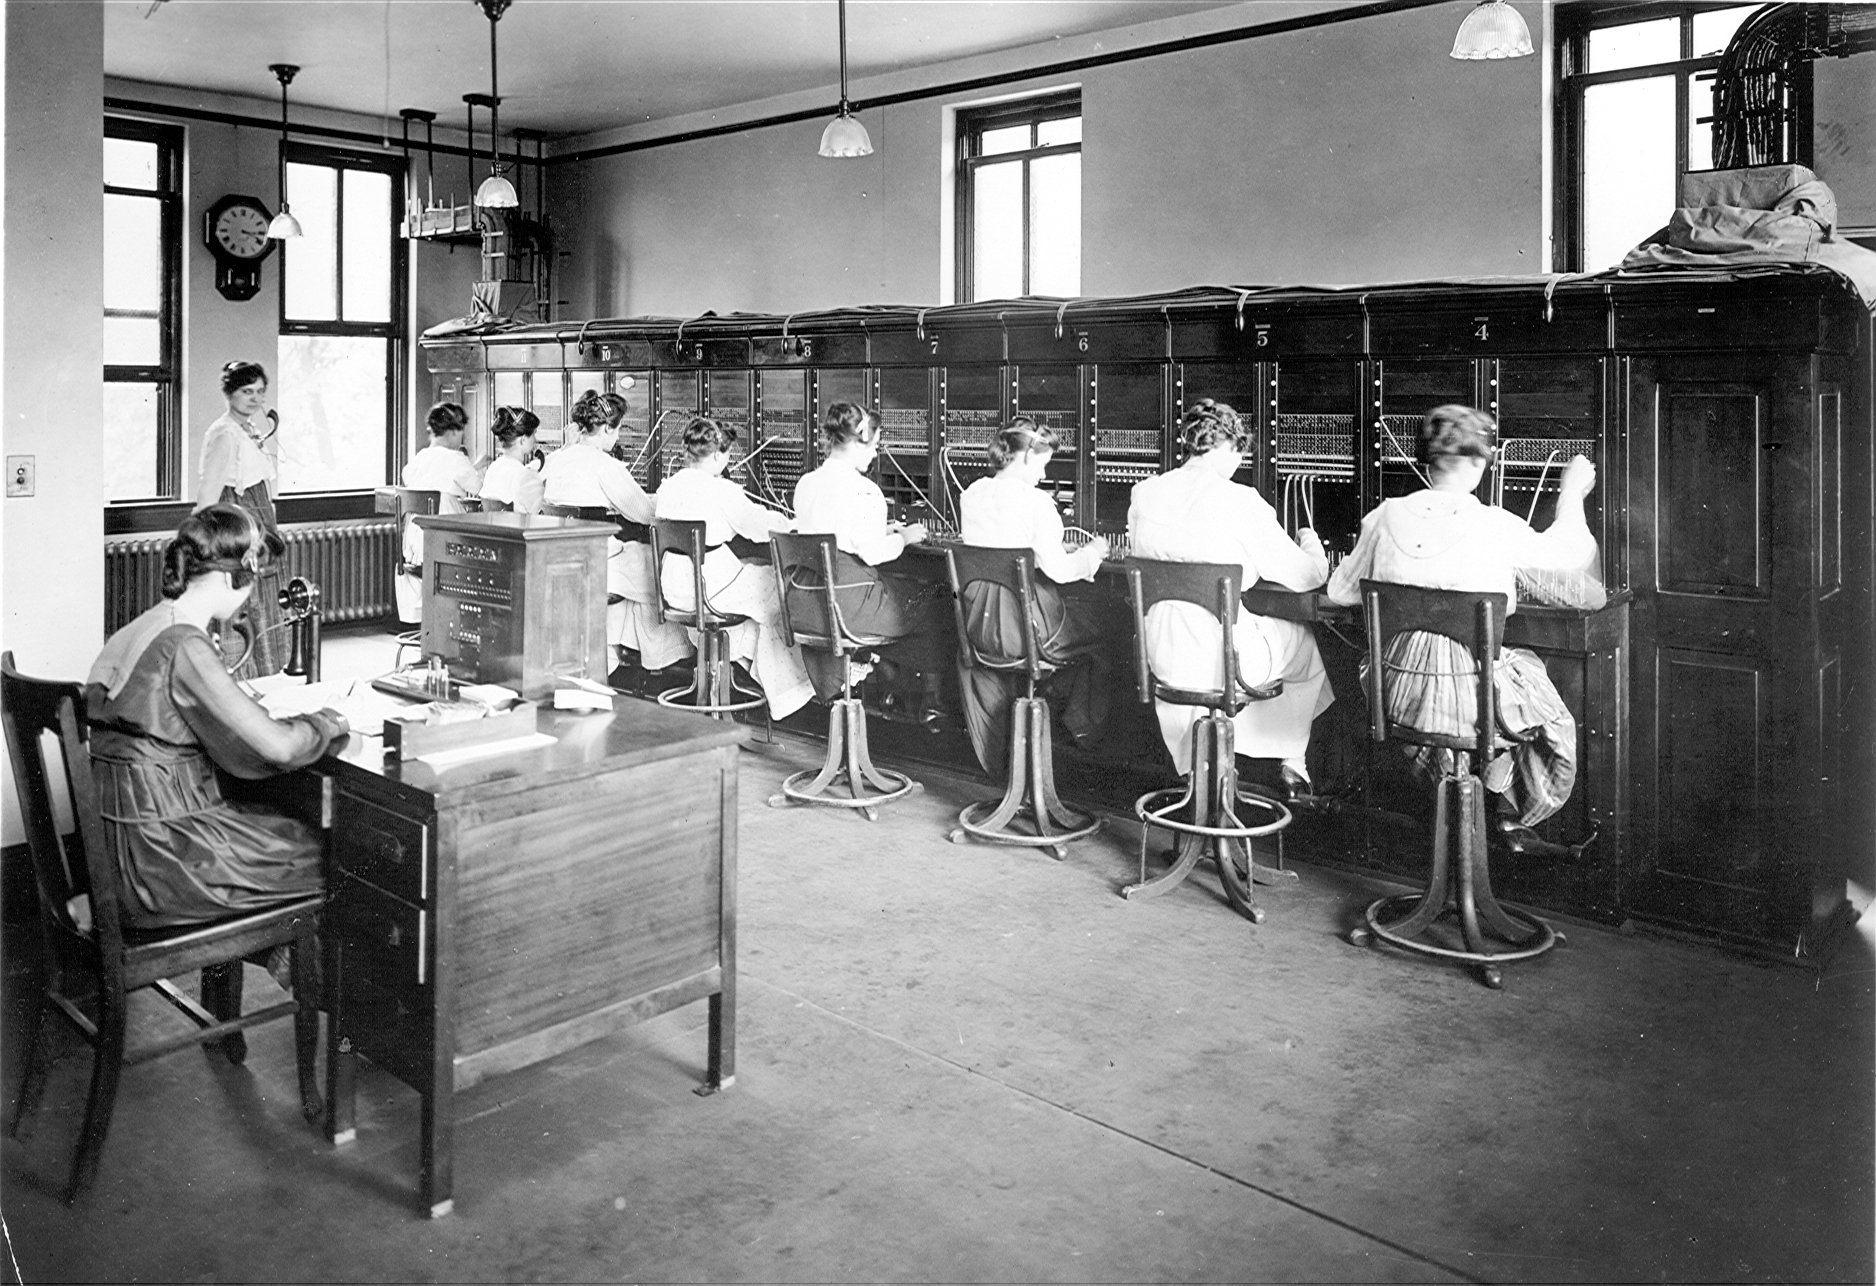 early switchboard operators pc operators jpg 1876×1286 working early switchboard operators pc operators jpg 1876×1286